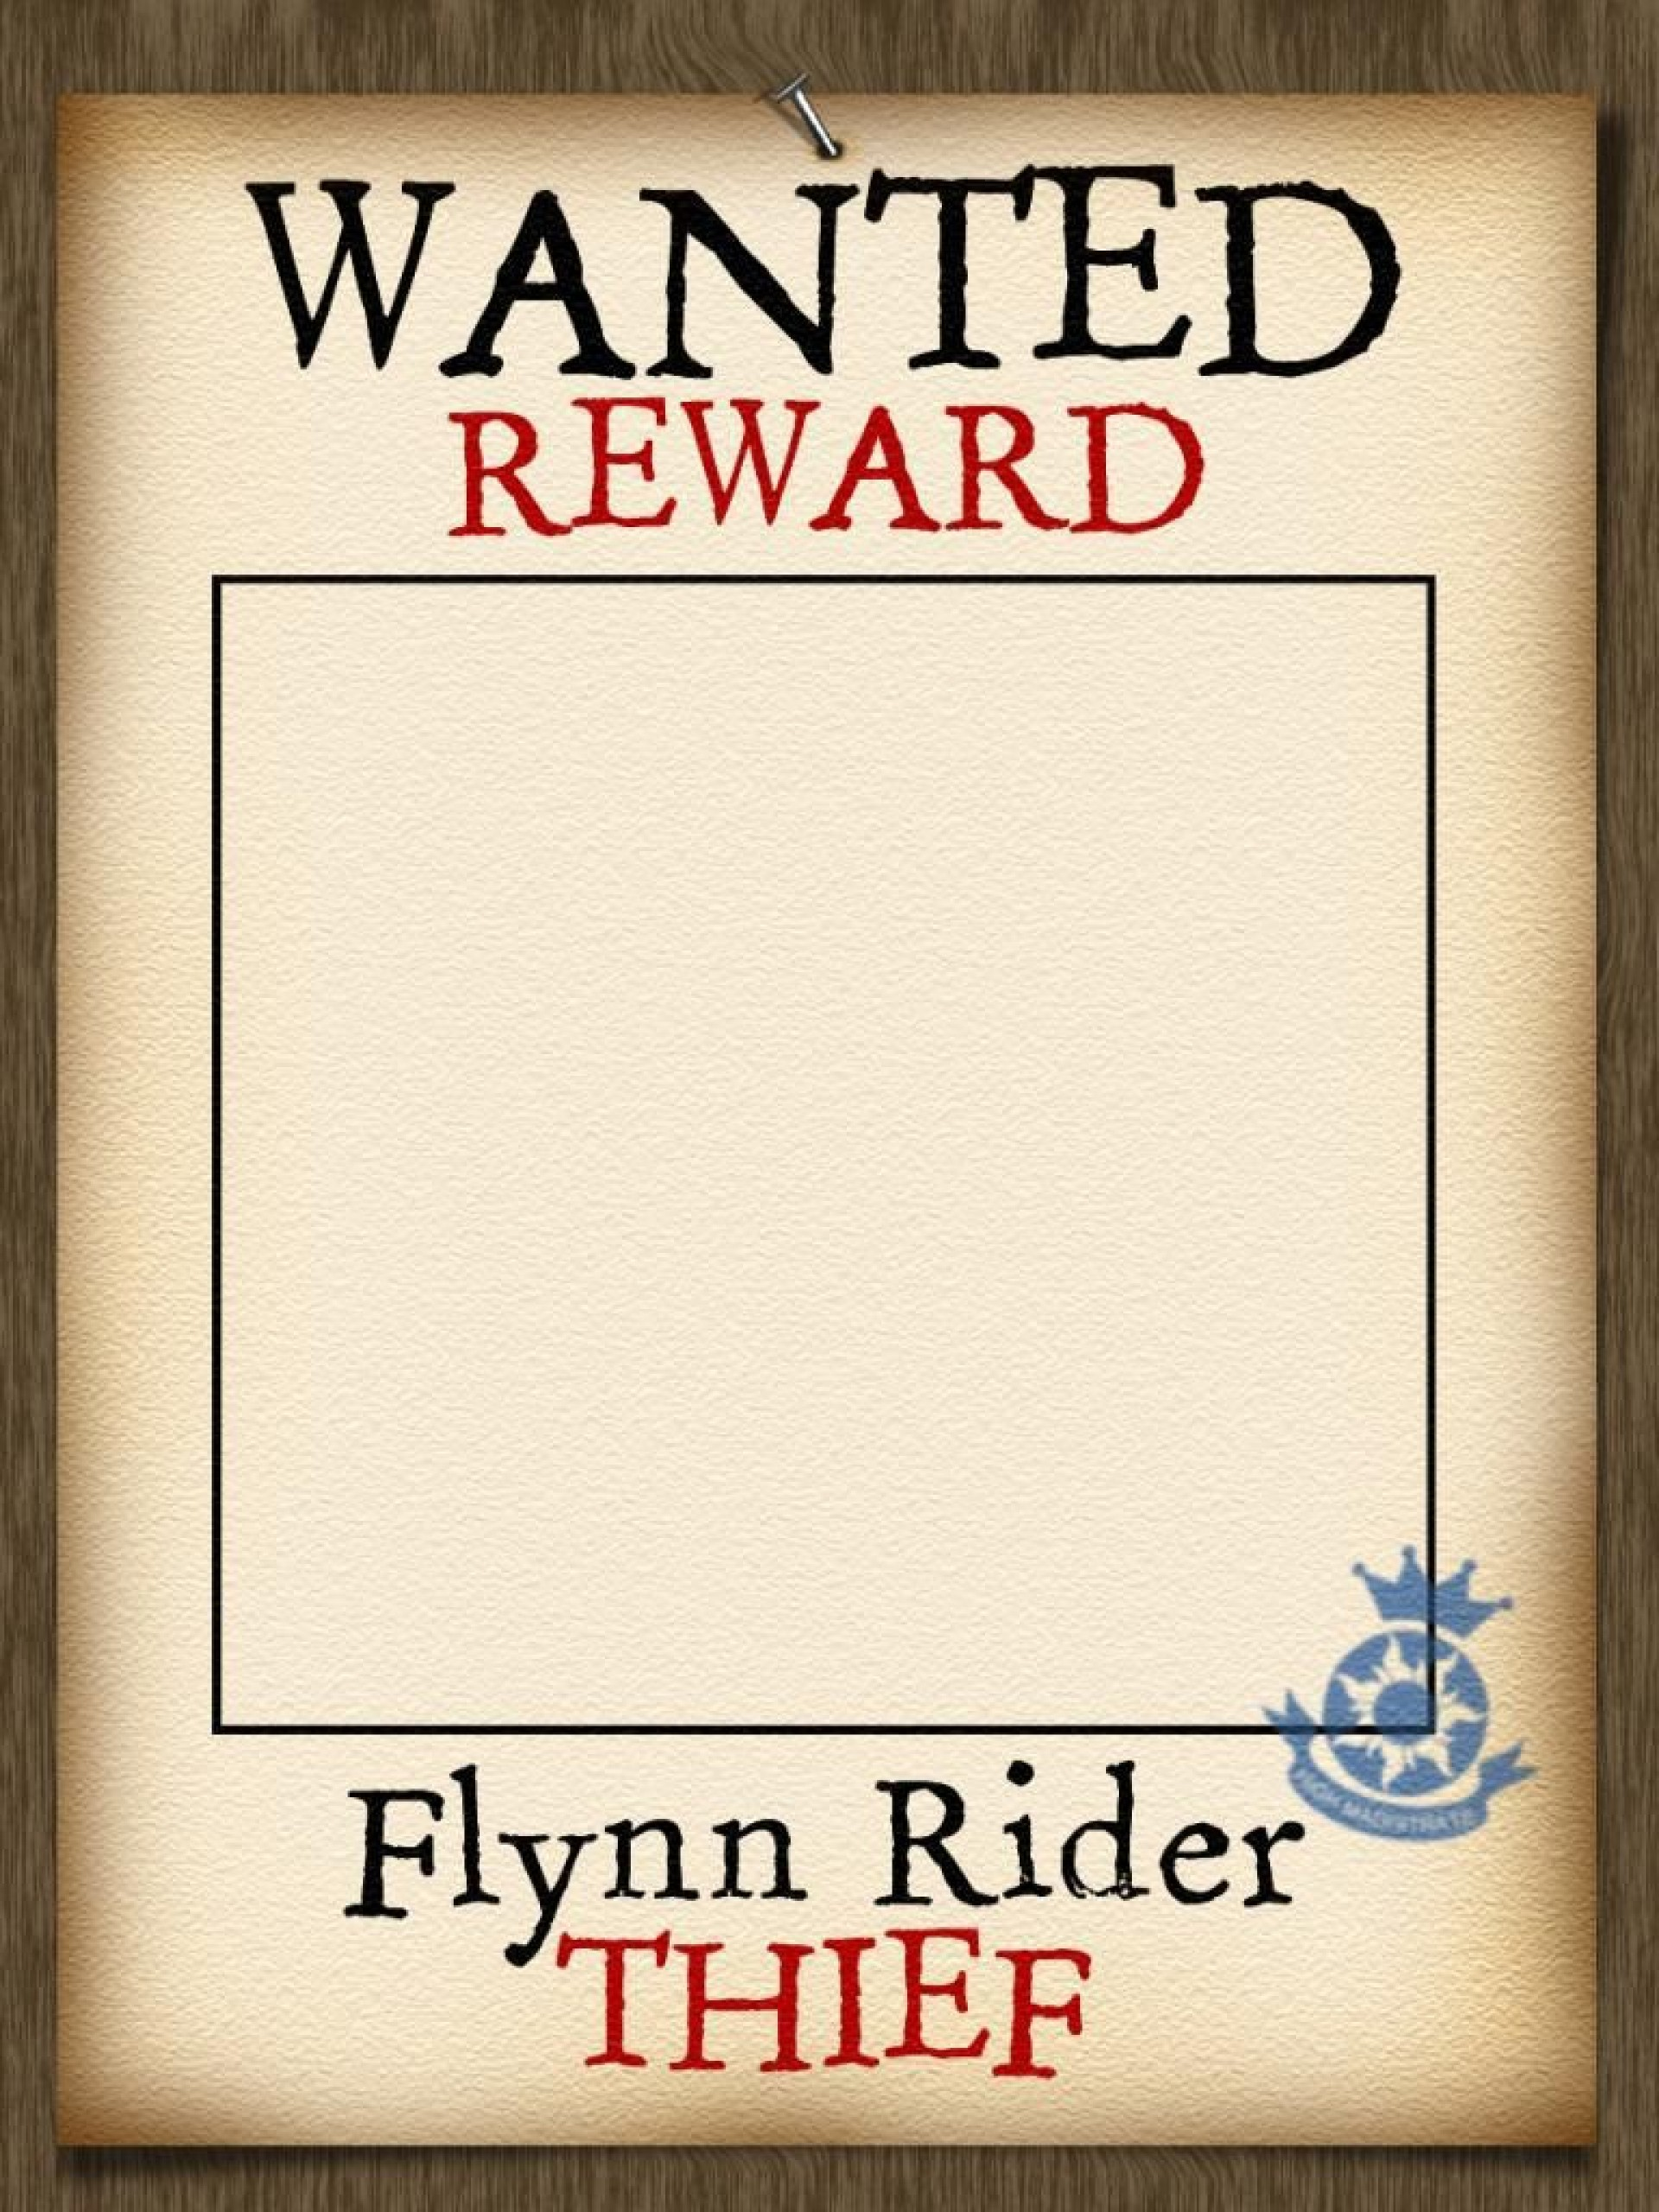 002 Magnificent Wanted Poster Template Pdf Sample  Free Character1920